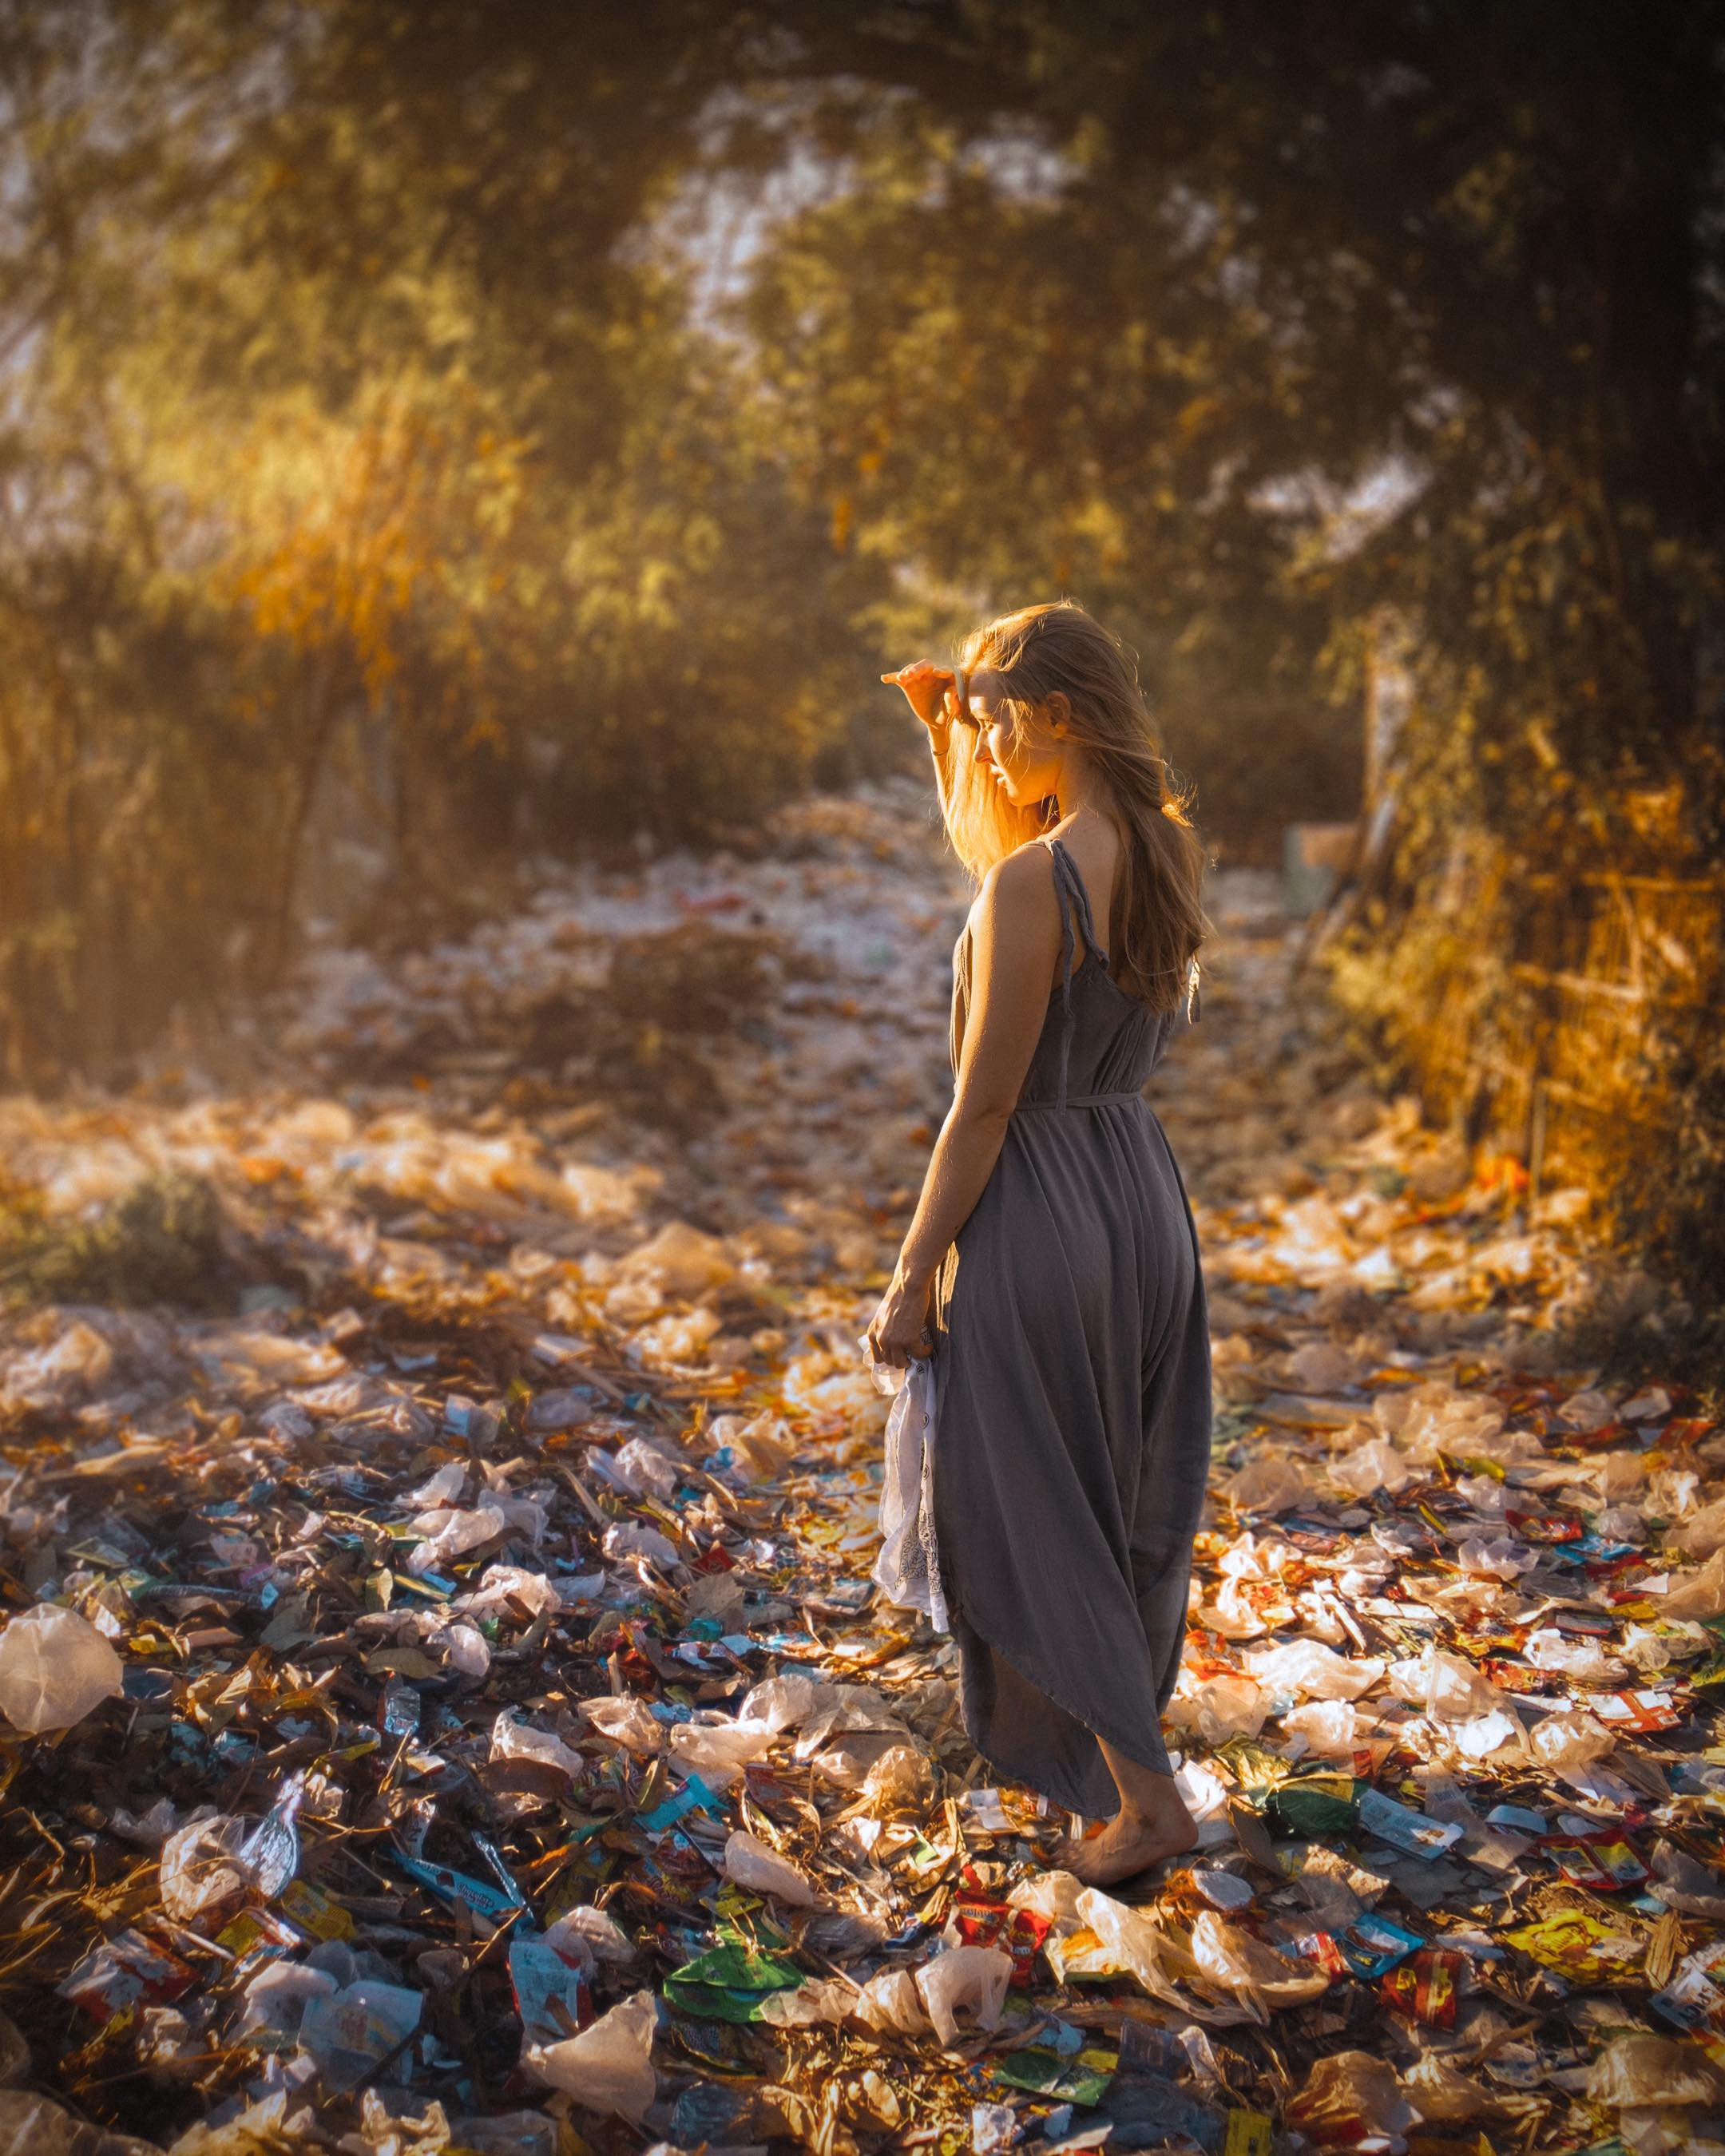 A woman stands in a trash filled pathway that looks like fallen leaves at first glance